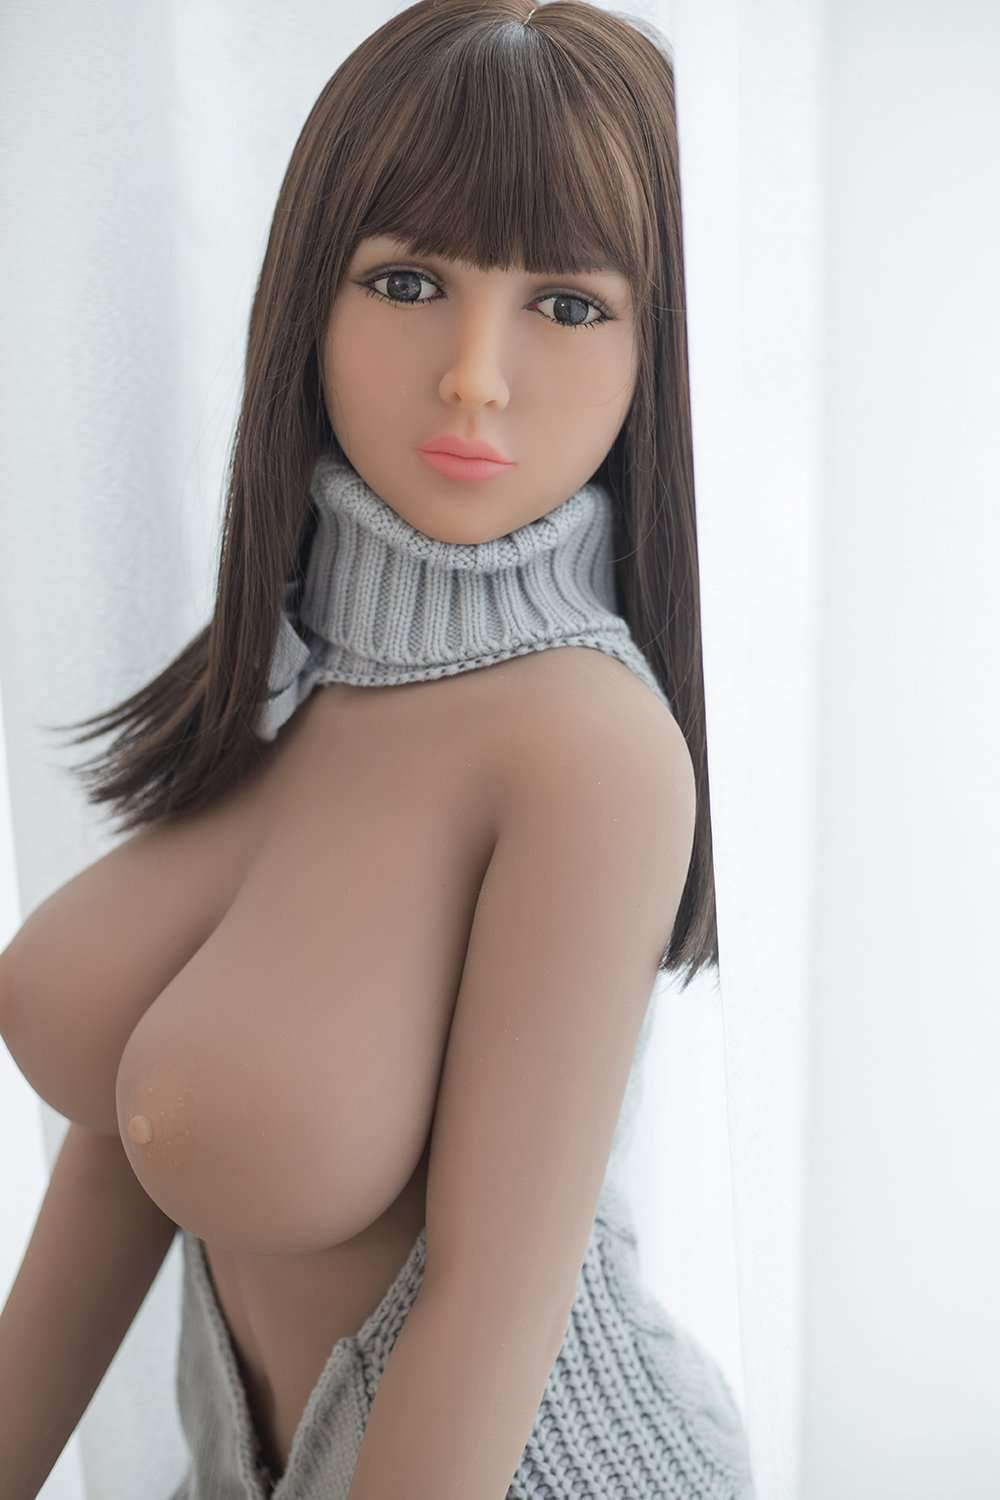 Sex Love Doll France Sexdolls Poupée-Adulte silicone